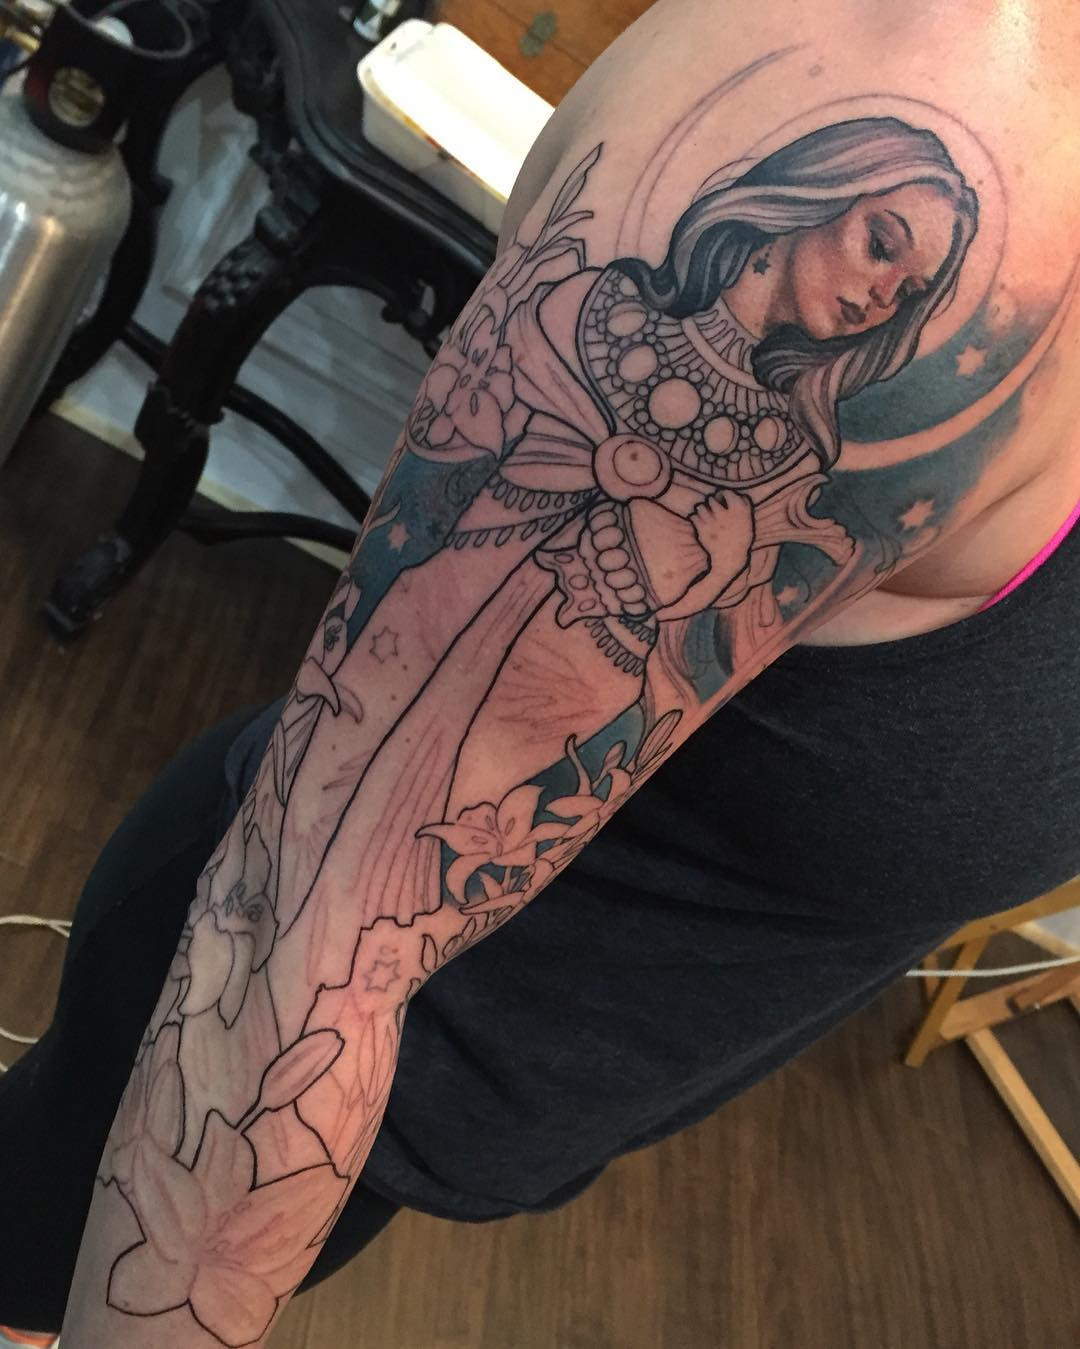 75 Graceful Virgo Tattoo Ideas - Show Your Admirable